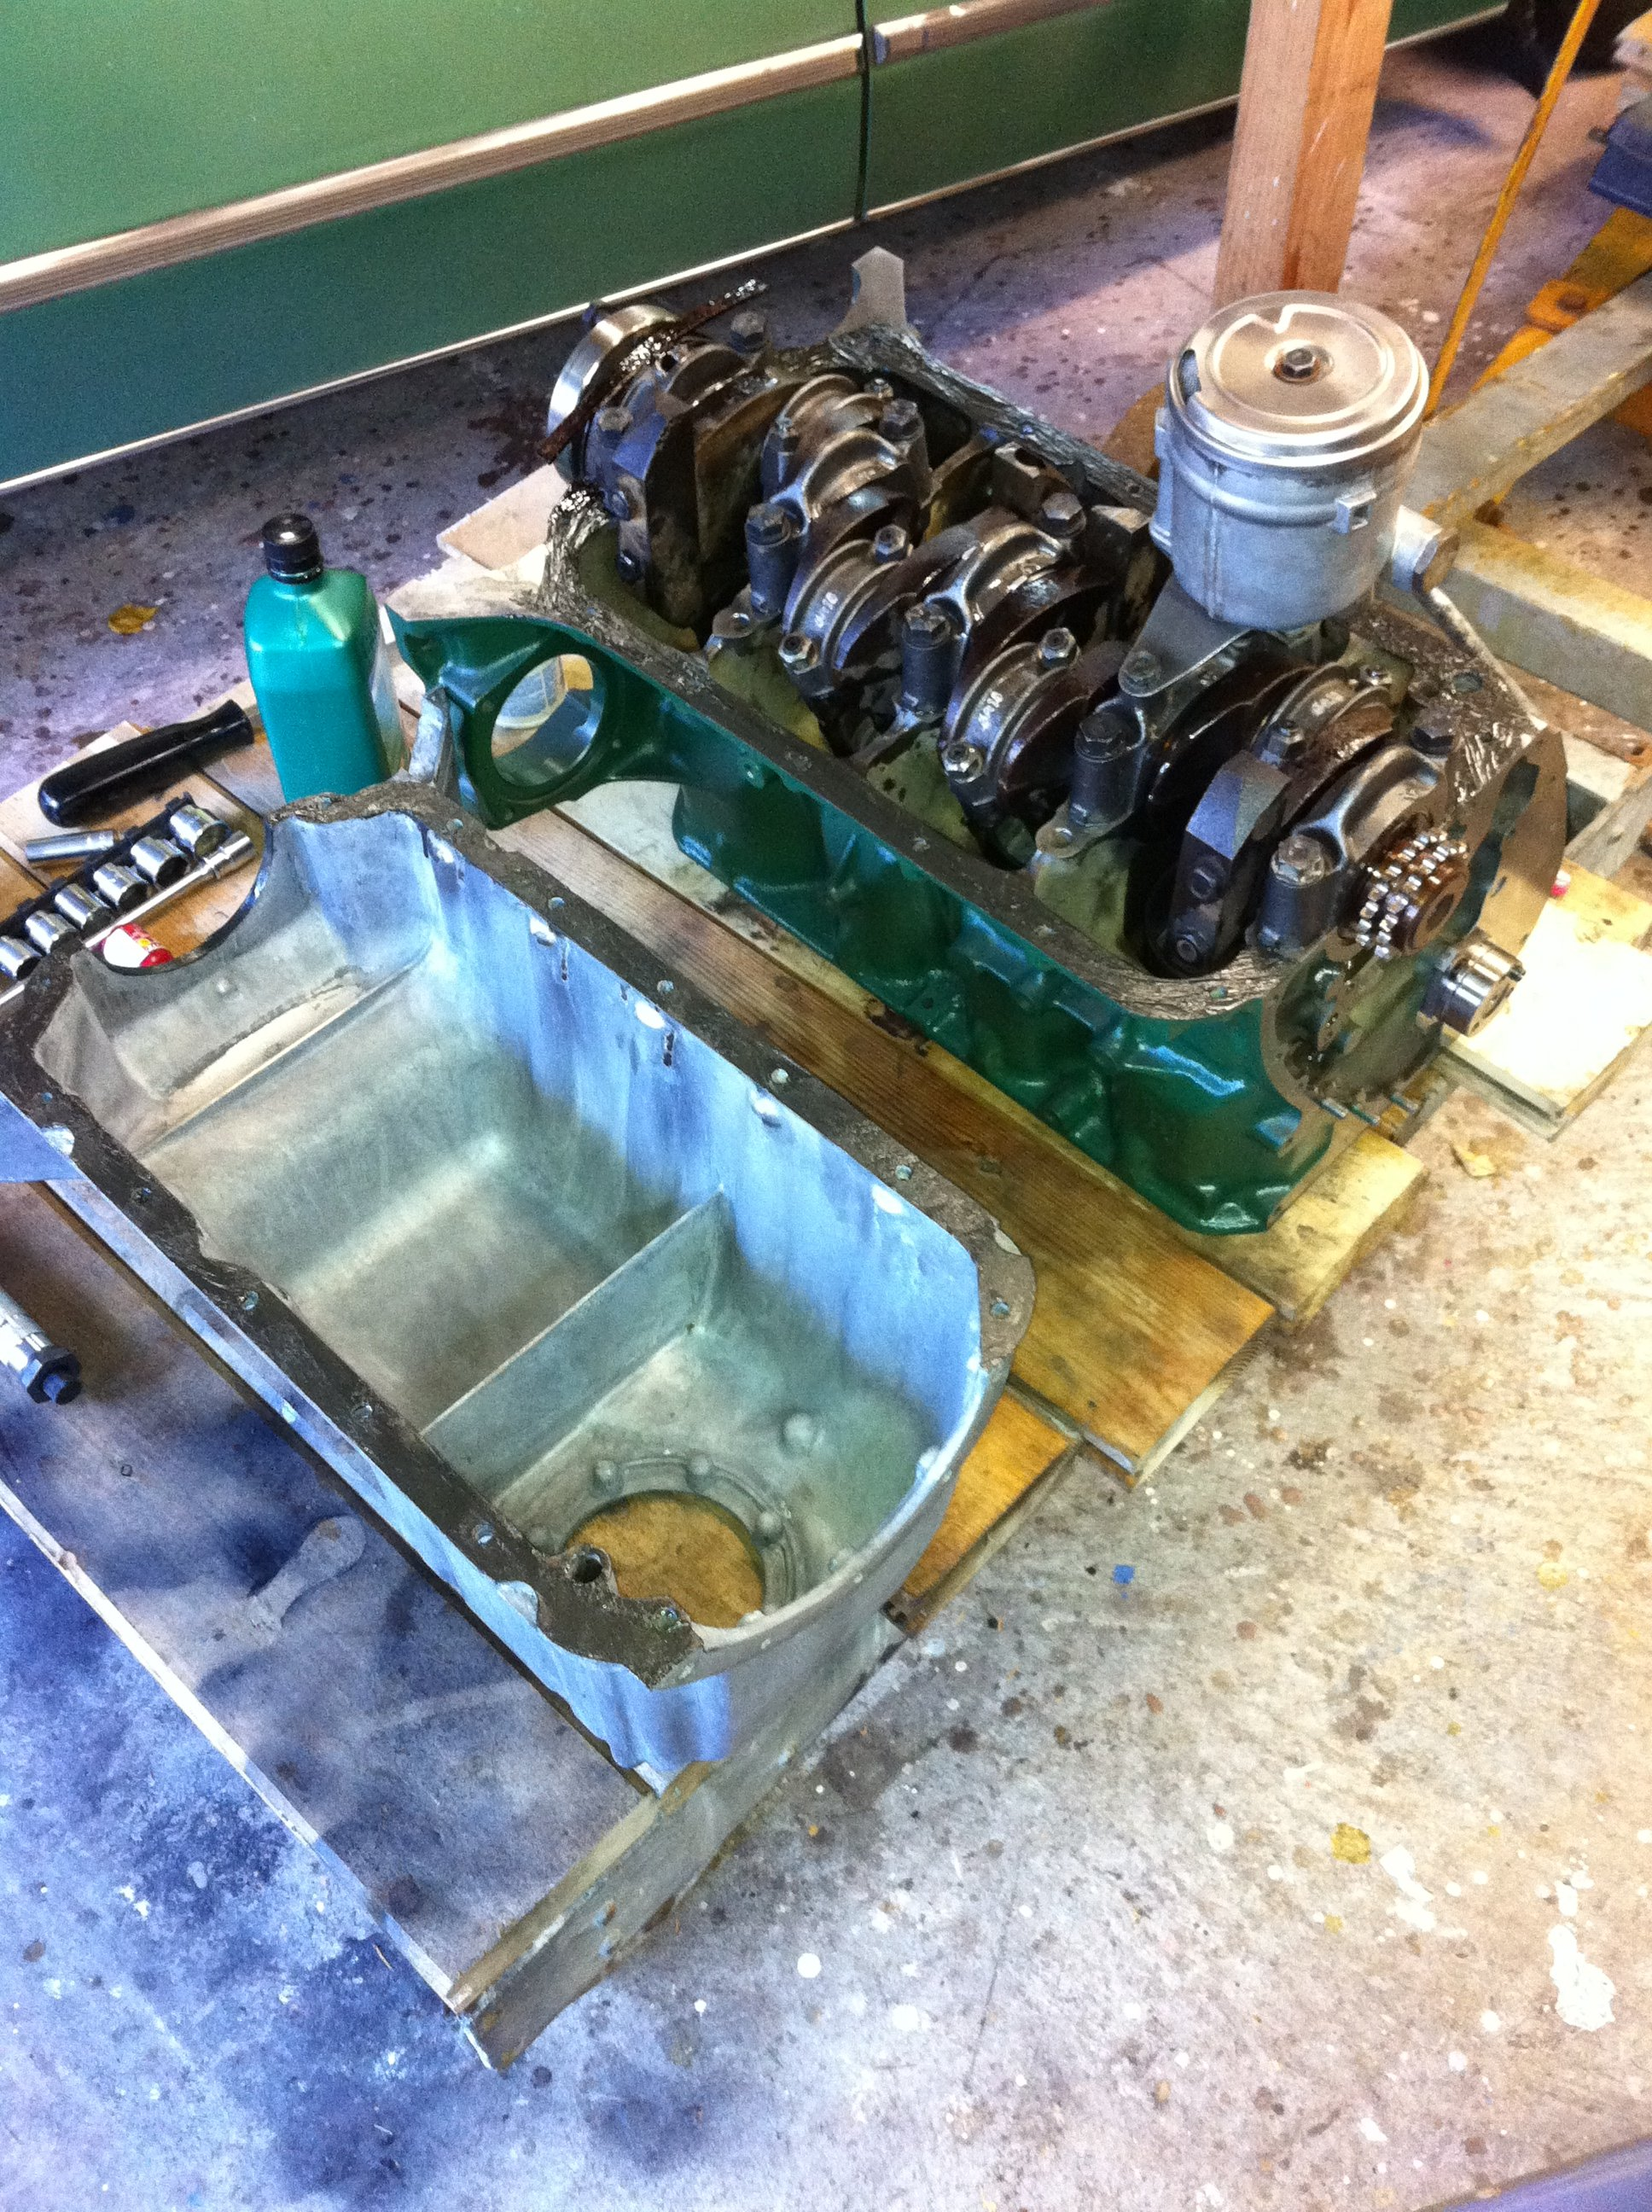 After the oil pump and filter housing goes in, the sump goes on